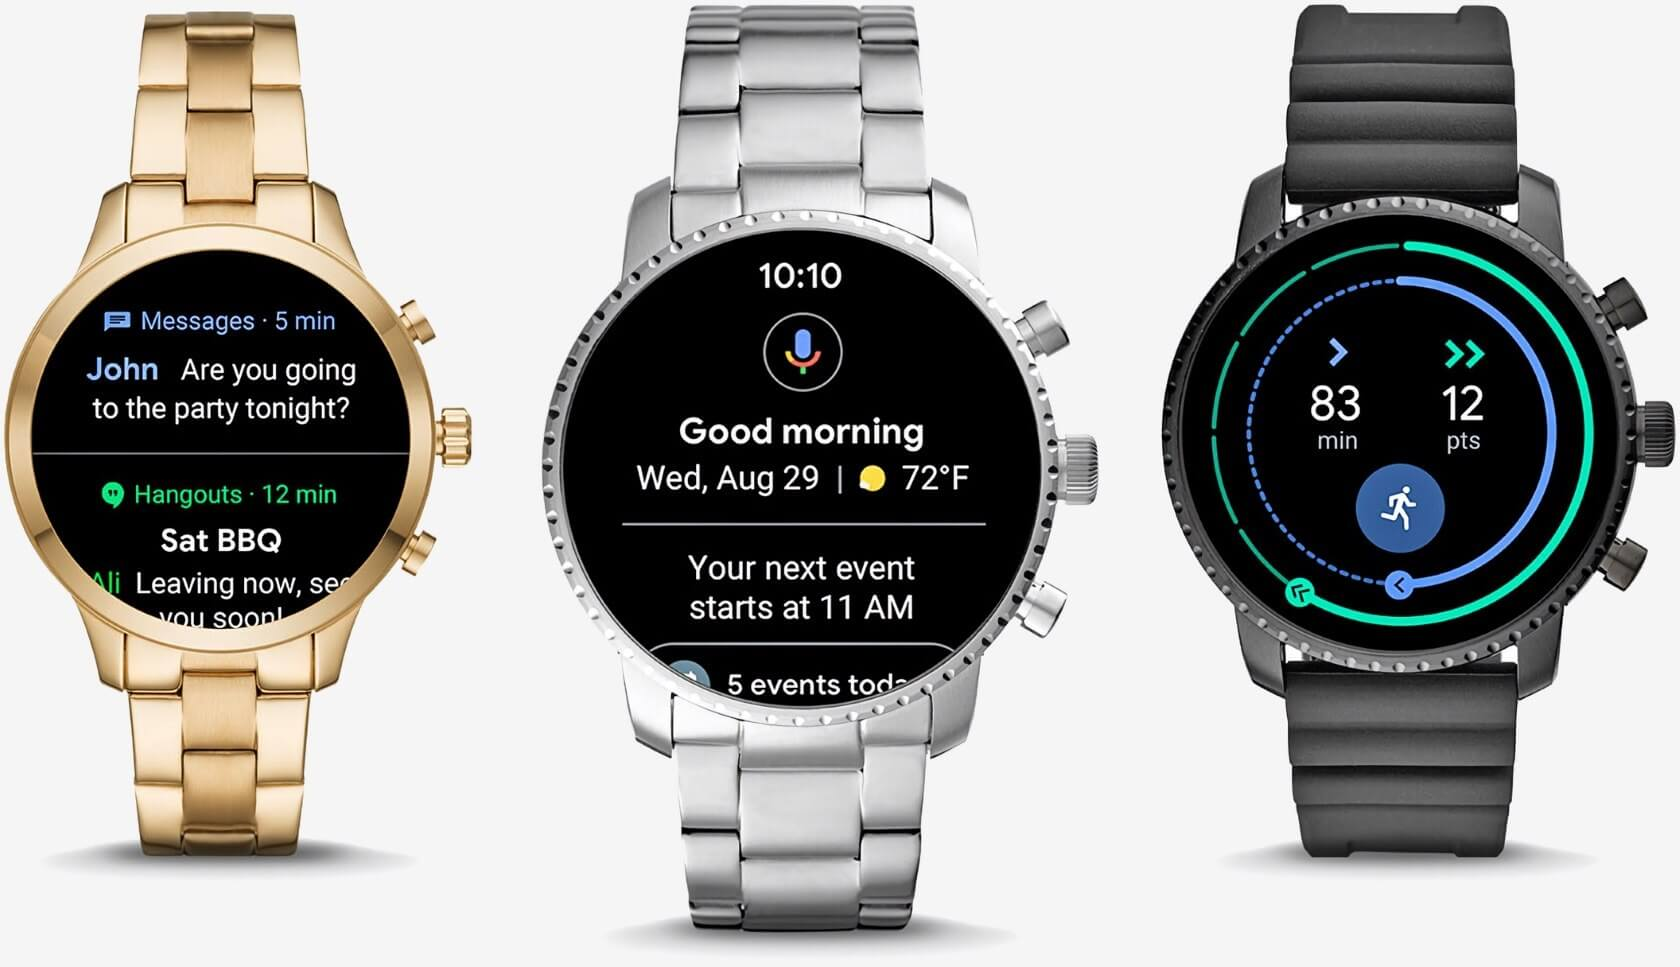 Google to acquire $40 million worth of Fossil's smartwatch